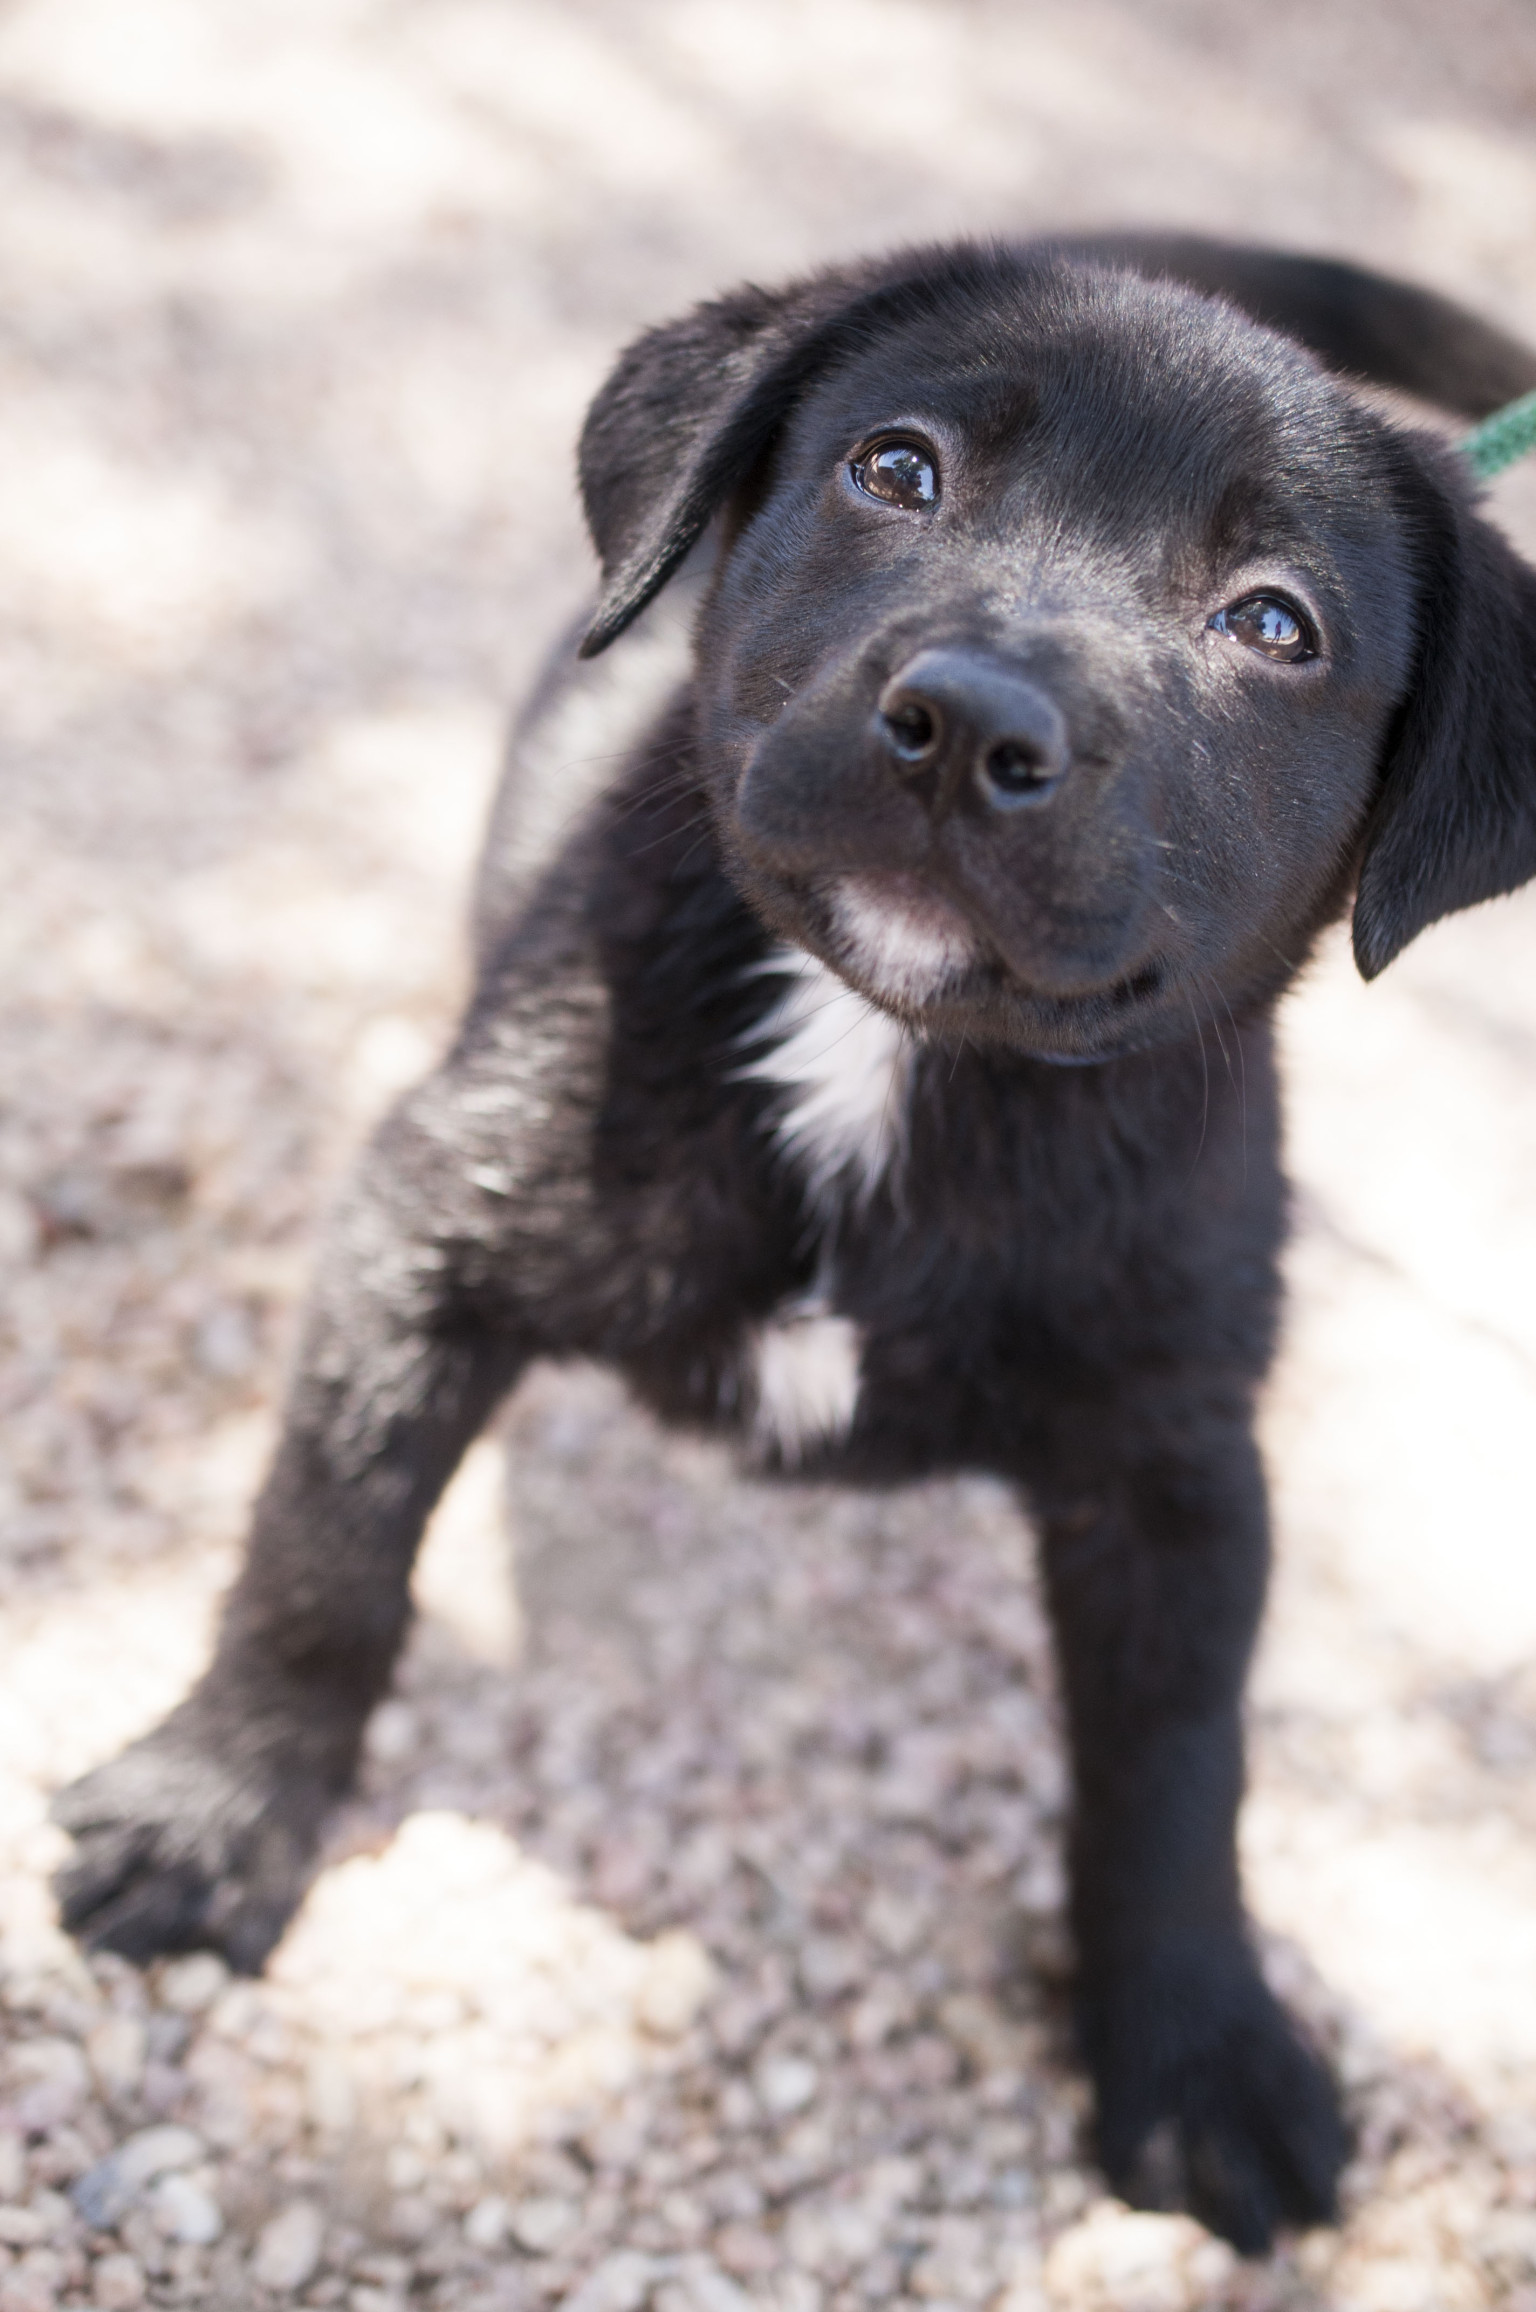 Adoptable Puppies This Week From Lifeline Puppy Rescue PHOTOS